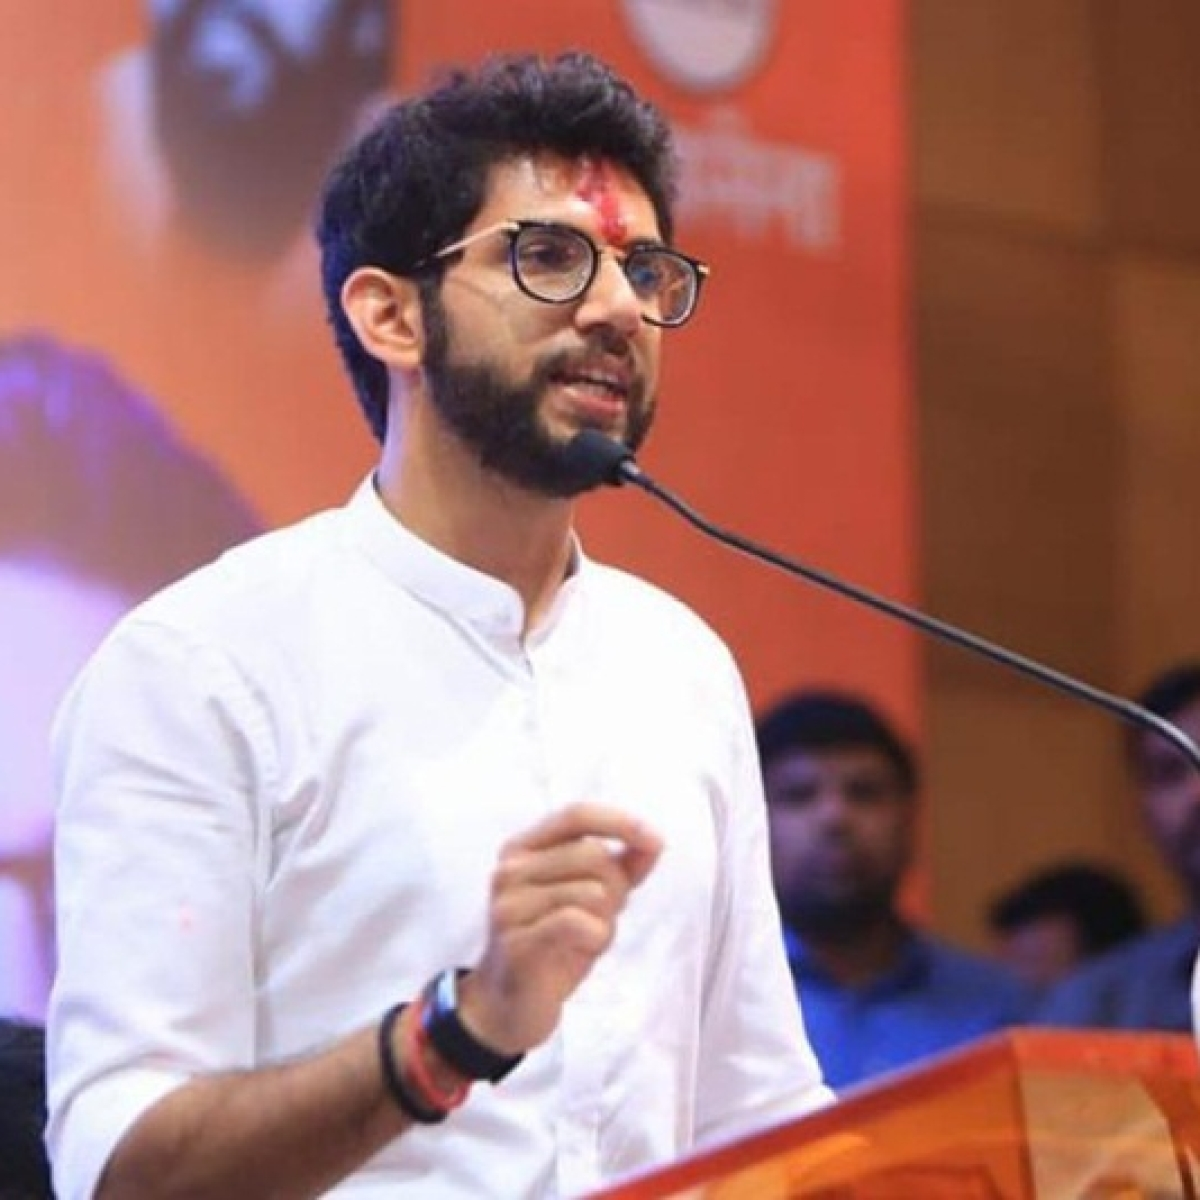 Coronavirus in Mumbai: Maha Tourism Minister Aaditya Thackeray explains how COVID-19 will change the world like 9/11